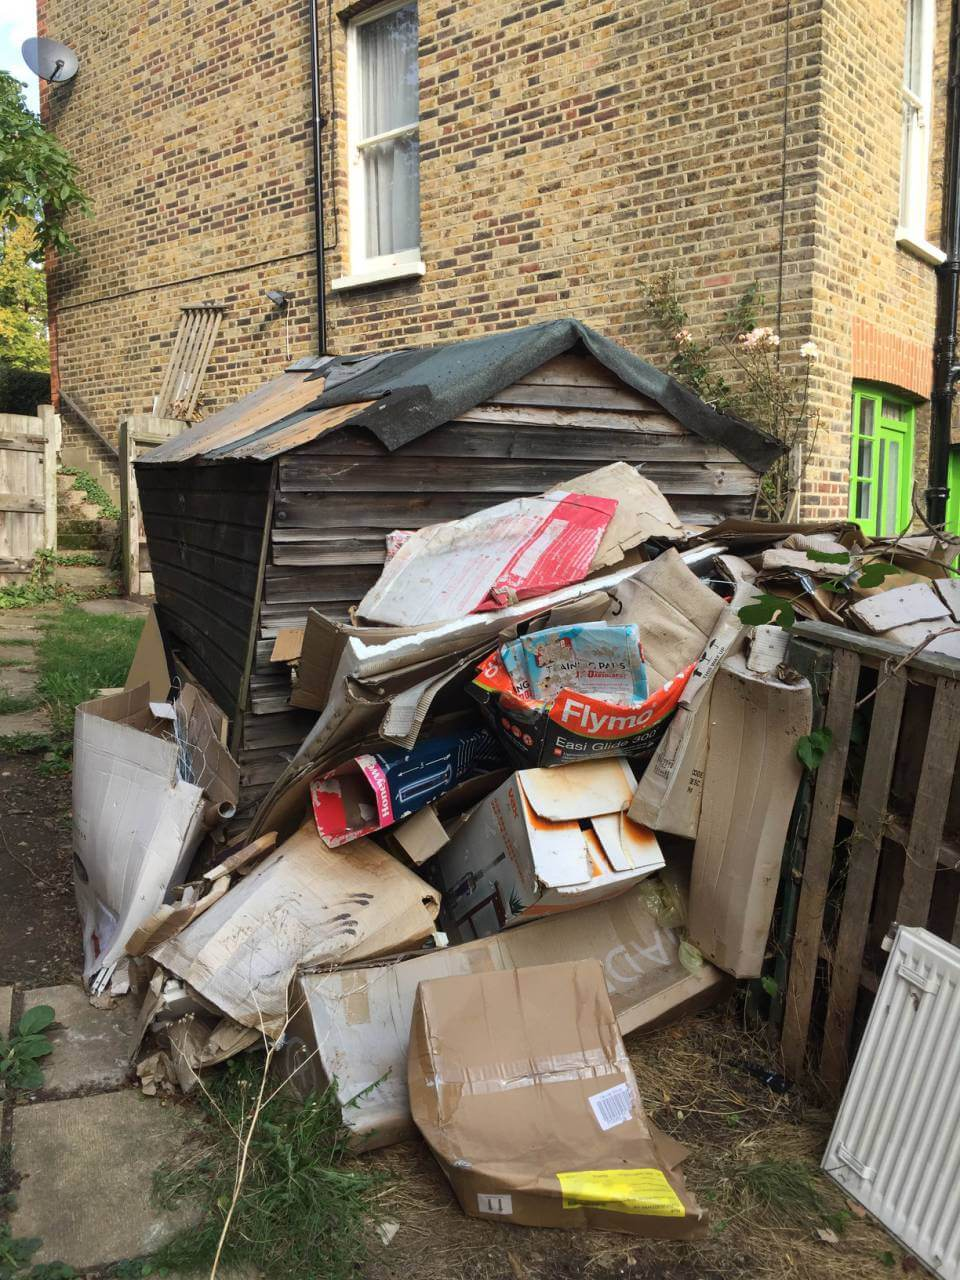 House Waste Recycling in Hounslow